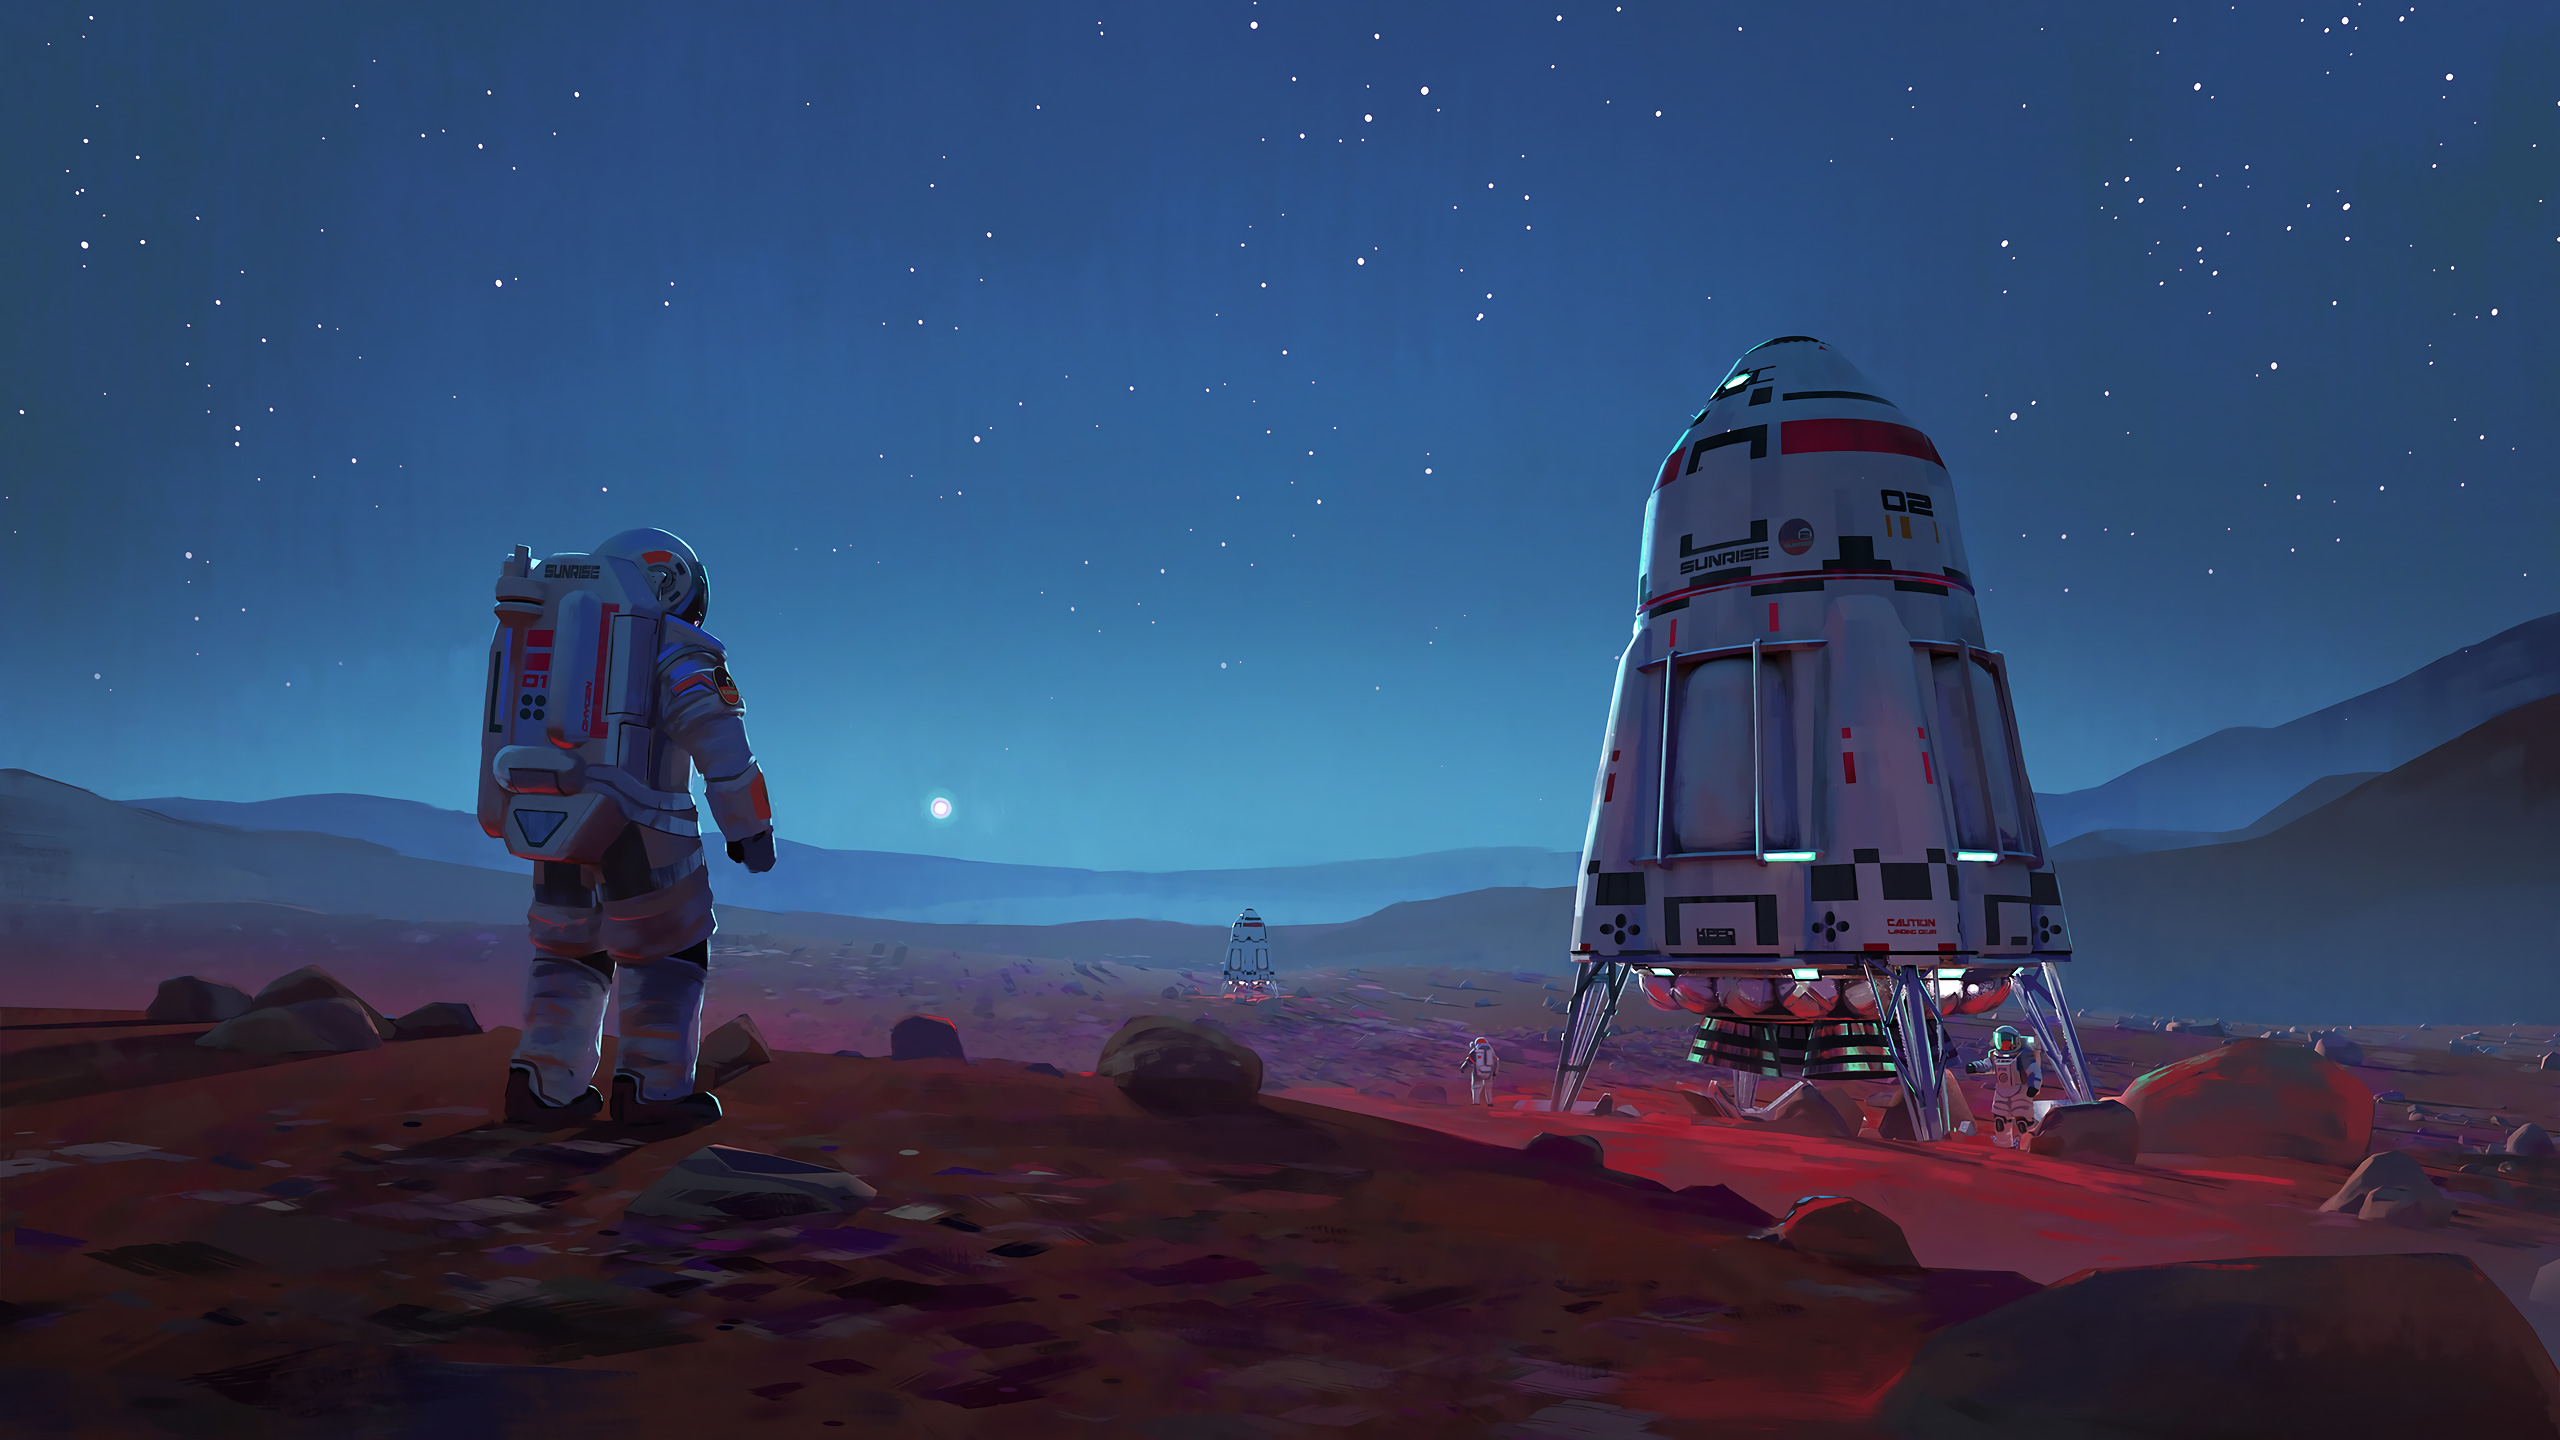 Scifi Astronaut Space Mars Hd Artist 4k Wallpapers Images Backgrounds Photos And Pictures